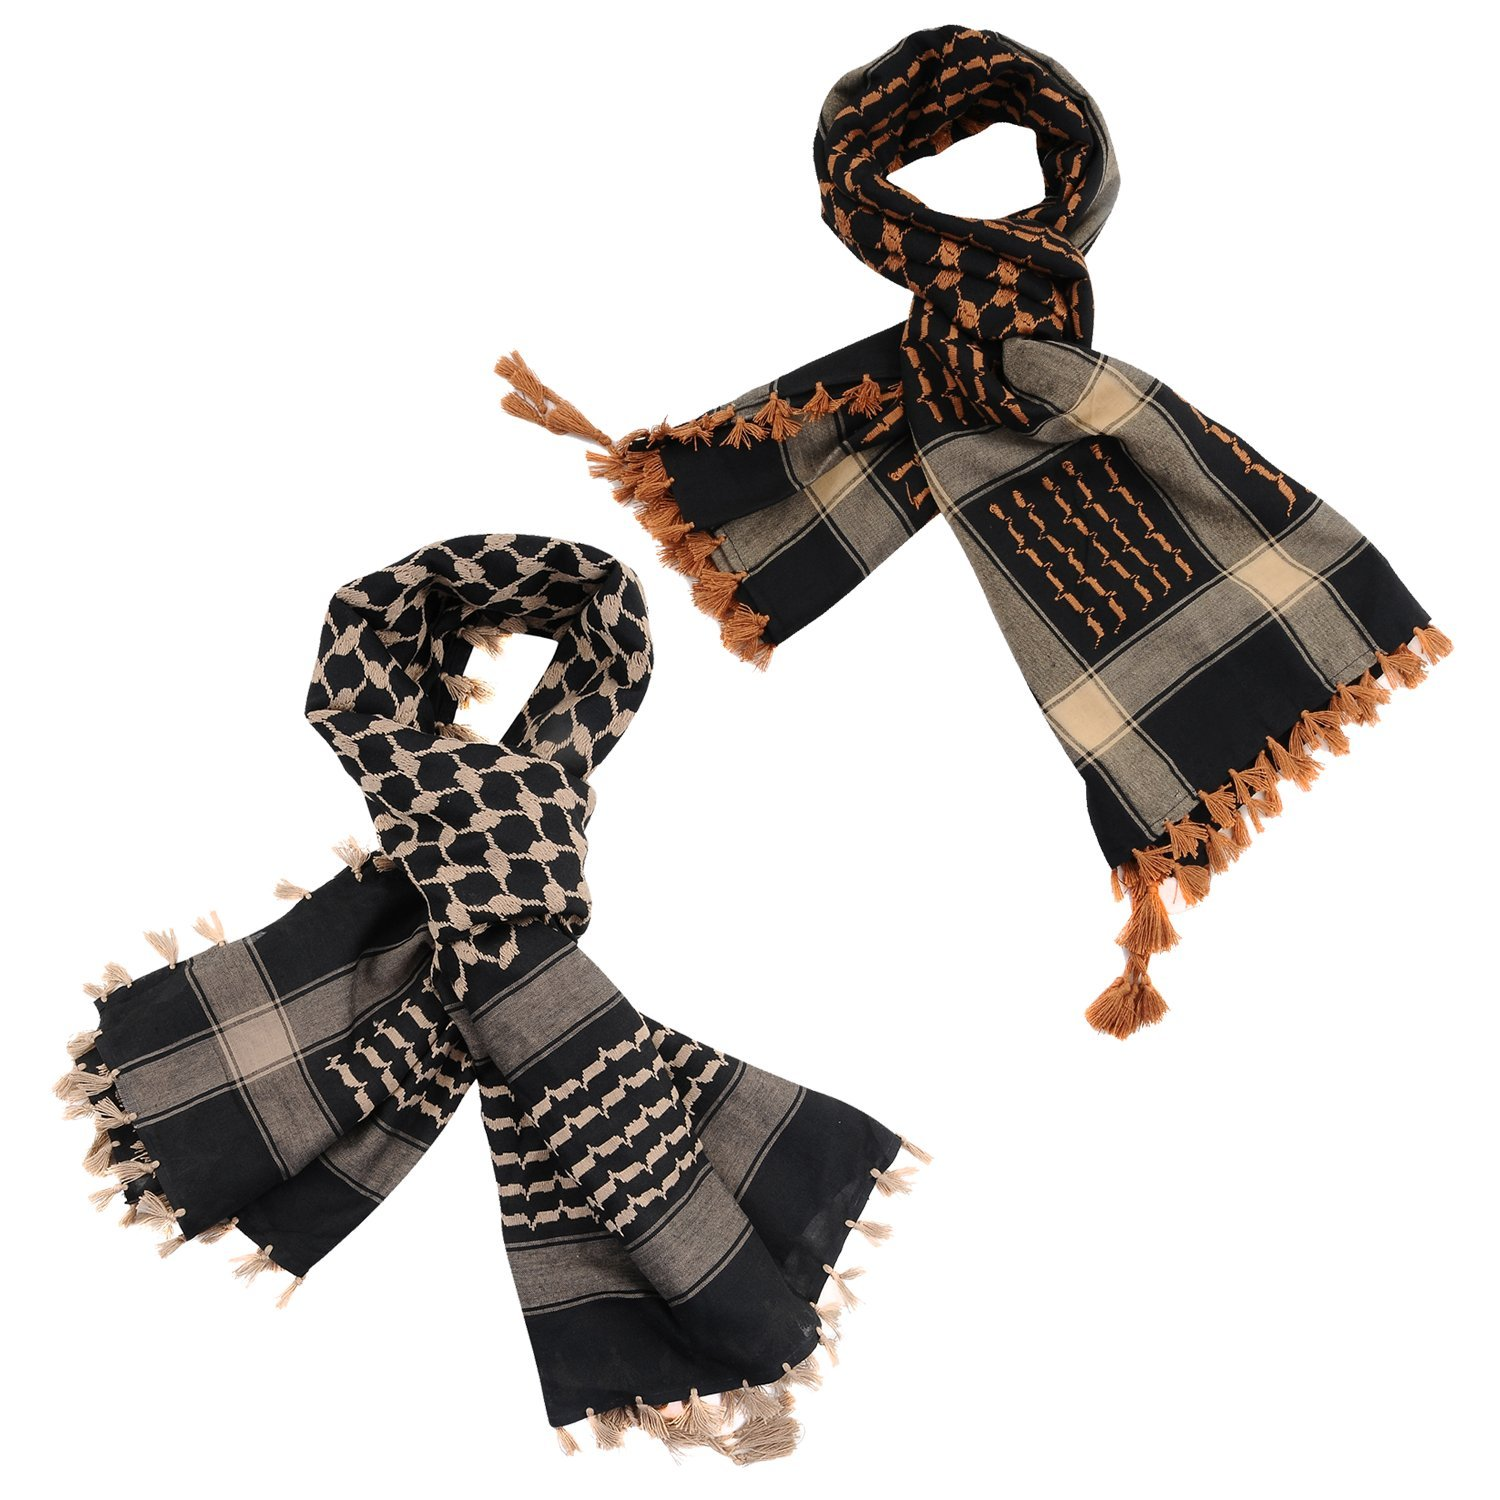 Micoop Large Size Premium Shemagh Scarf Arab Military Tactical Desert Scarf Wrap with Fine Tassels, 2-Pack (Black Light Brown & Black Brown)